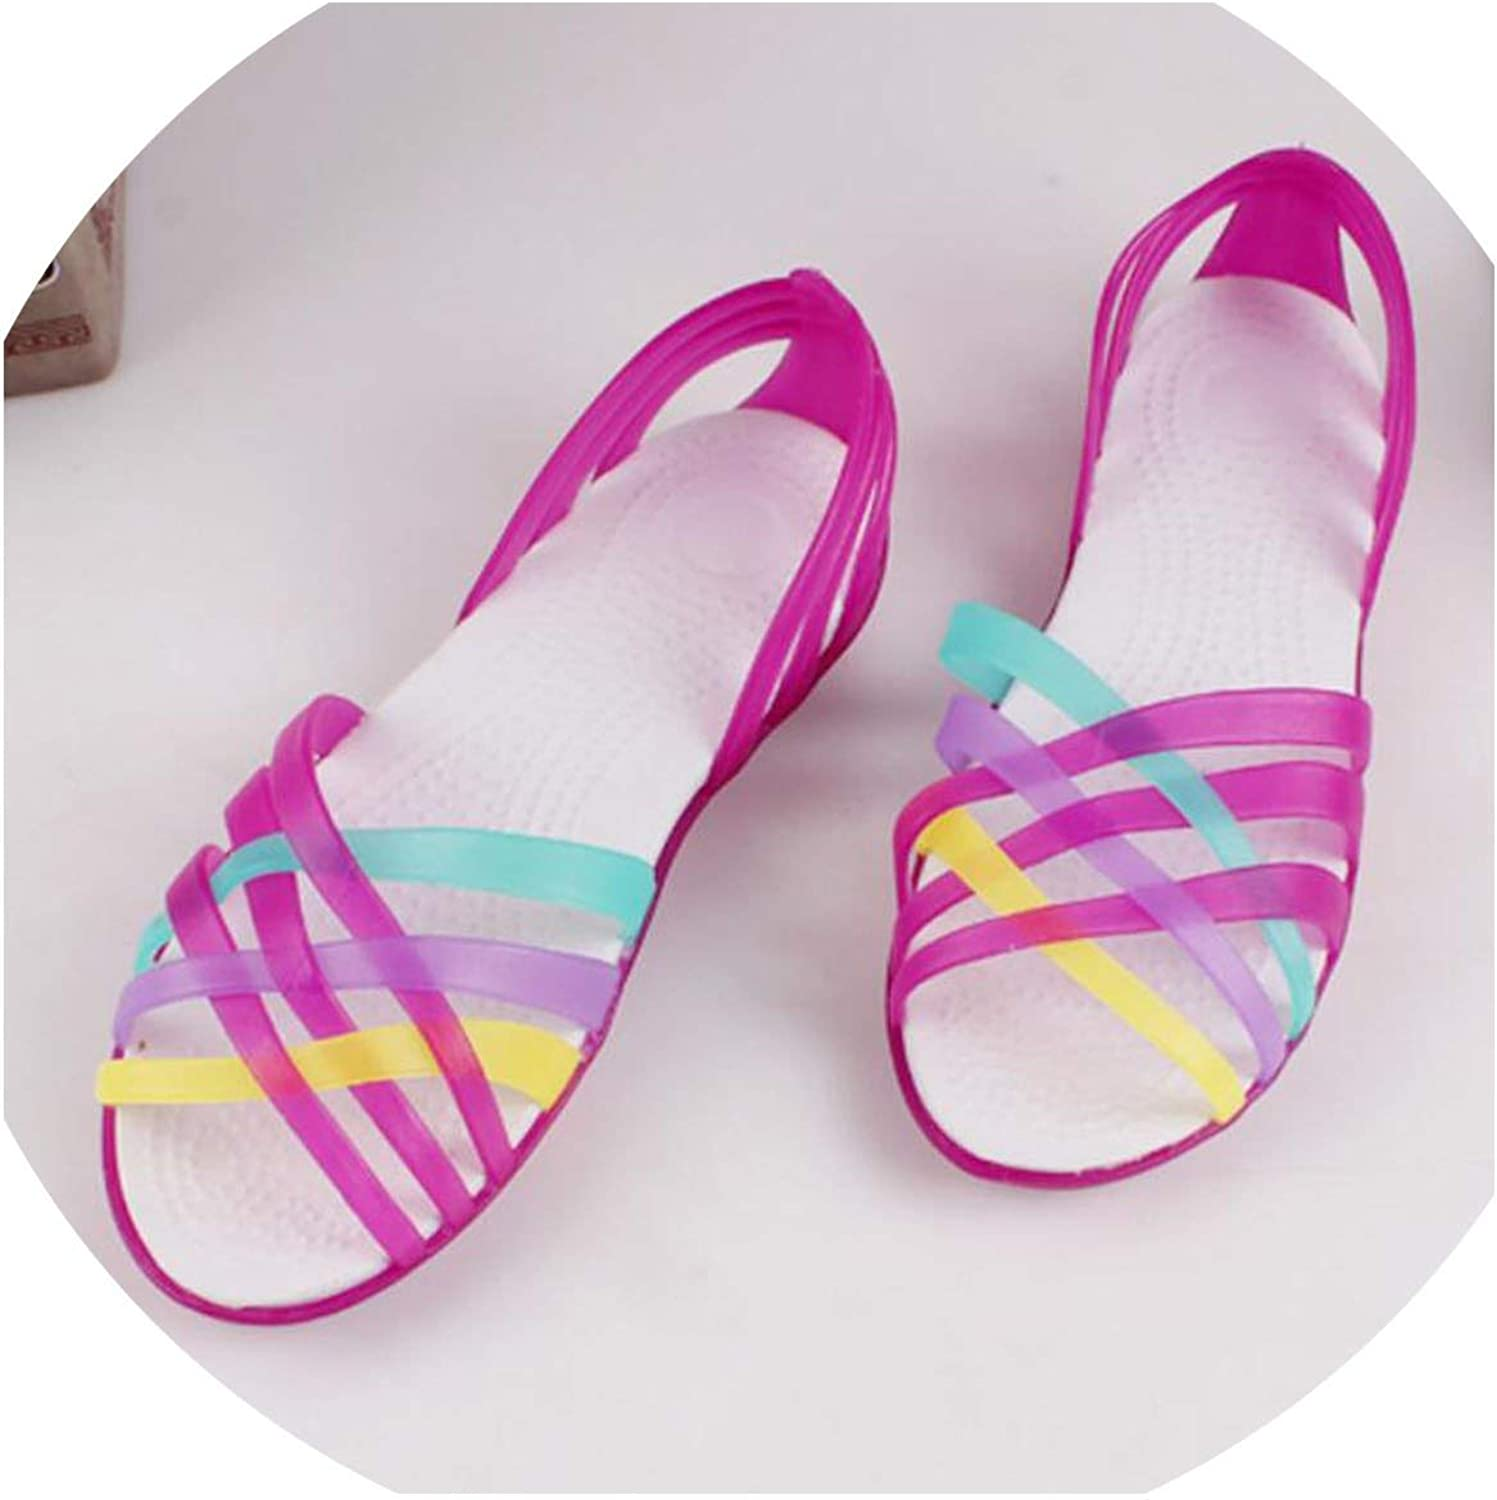 Summer Jelly Women Flat Sandals Peep Toe Beach shoes Ladies Slides Candy Rainbow Flats Sandalia